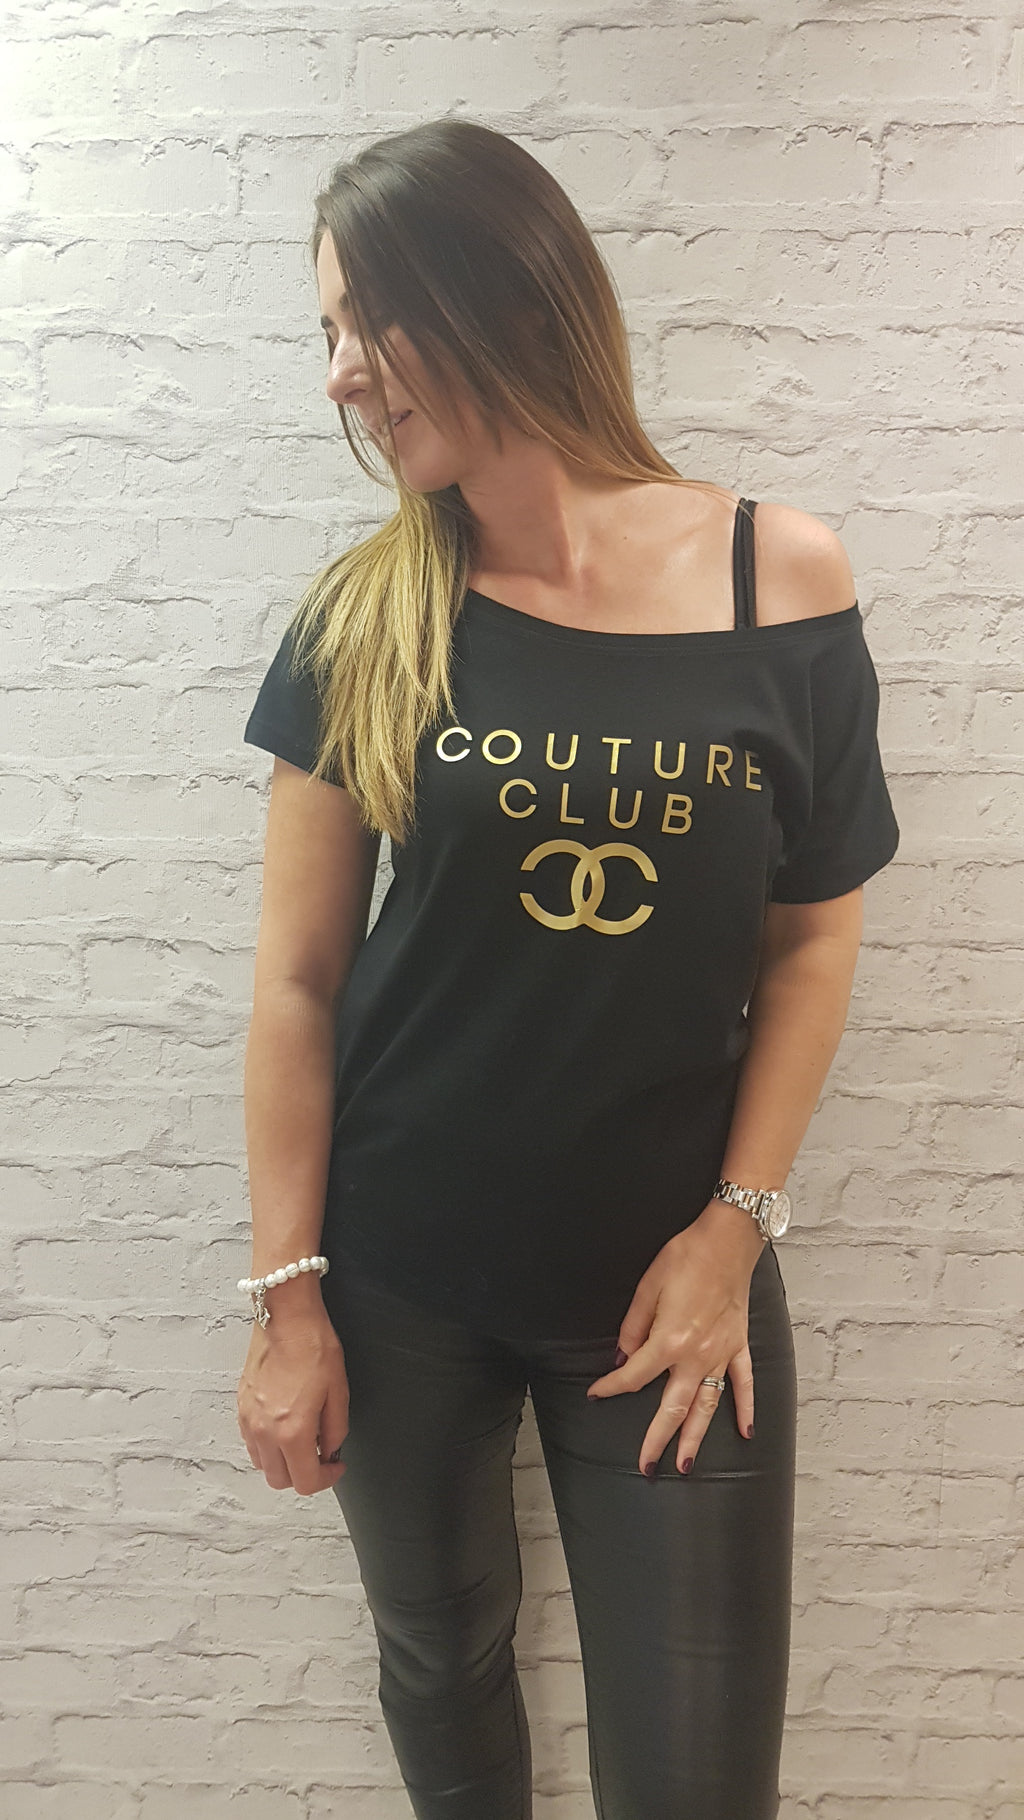 Slogan Couture Club - Scoop Neckline